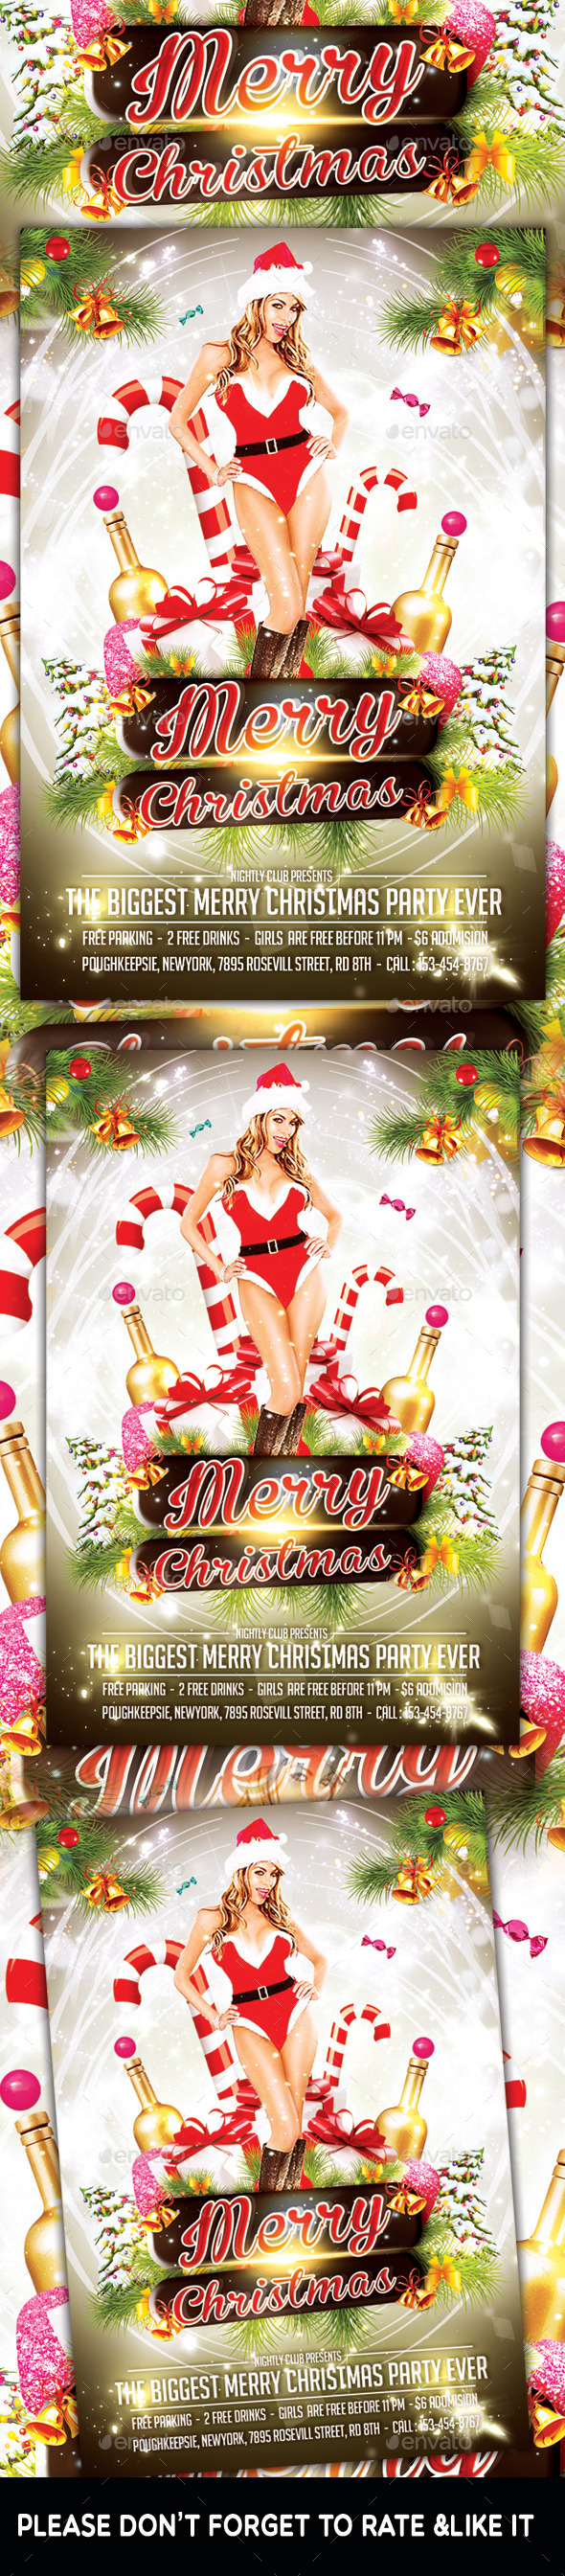 Merry Christmas Flyer - Flyers Print Templates